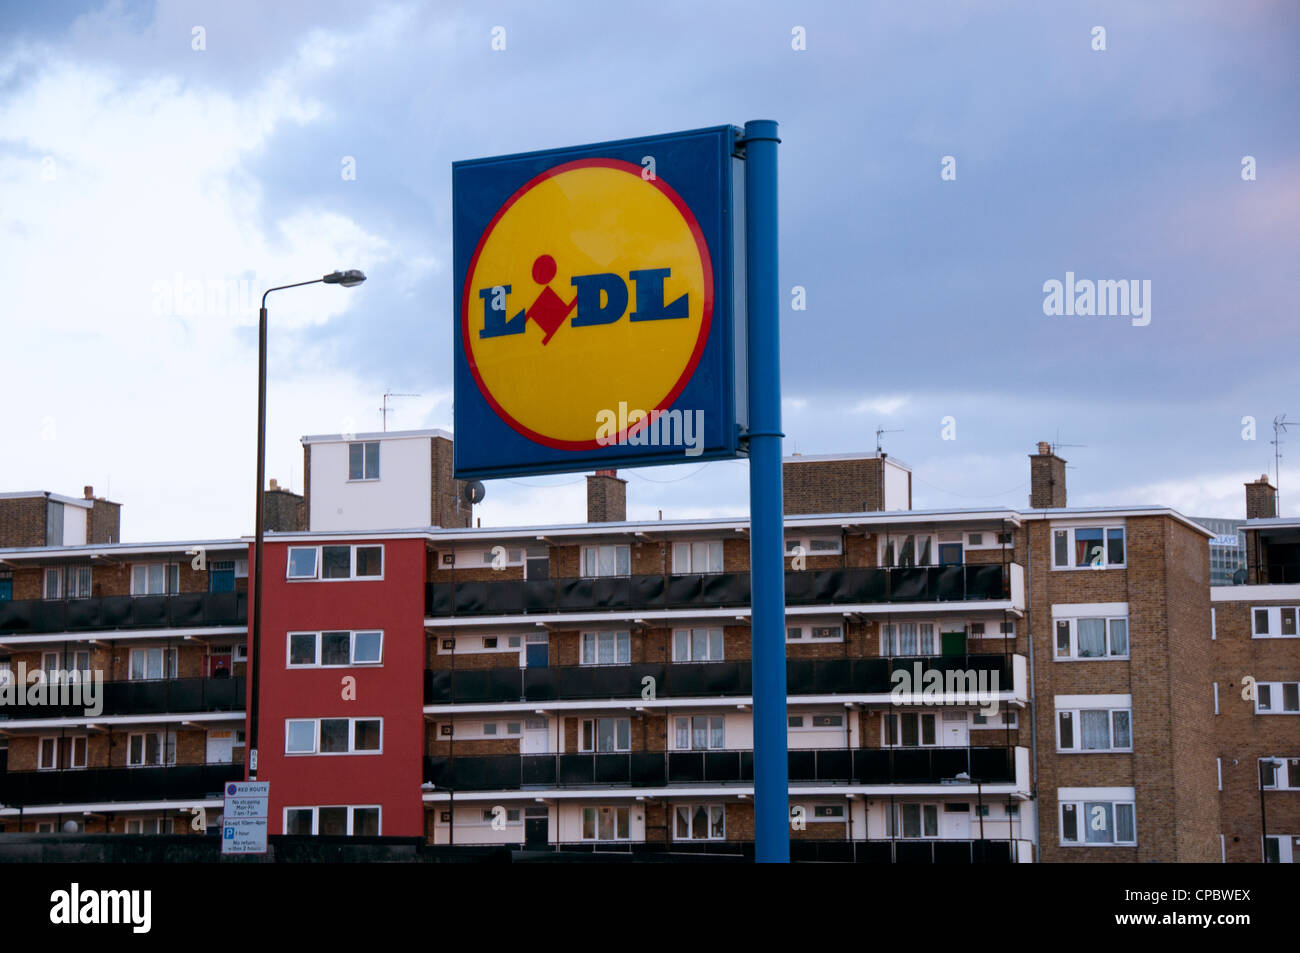 Lidl sign with council housing behind in East London - Stock Image